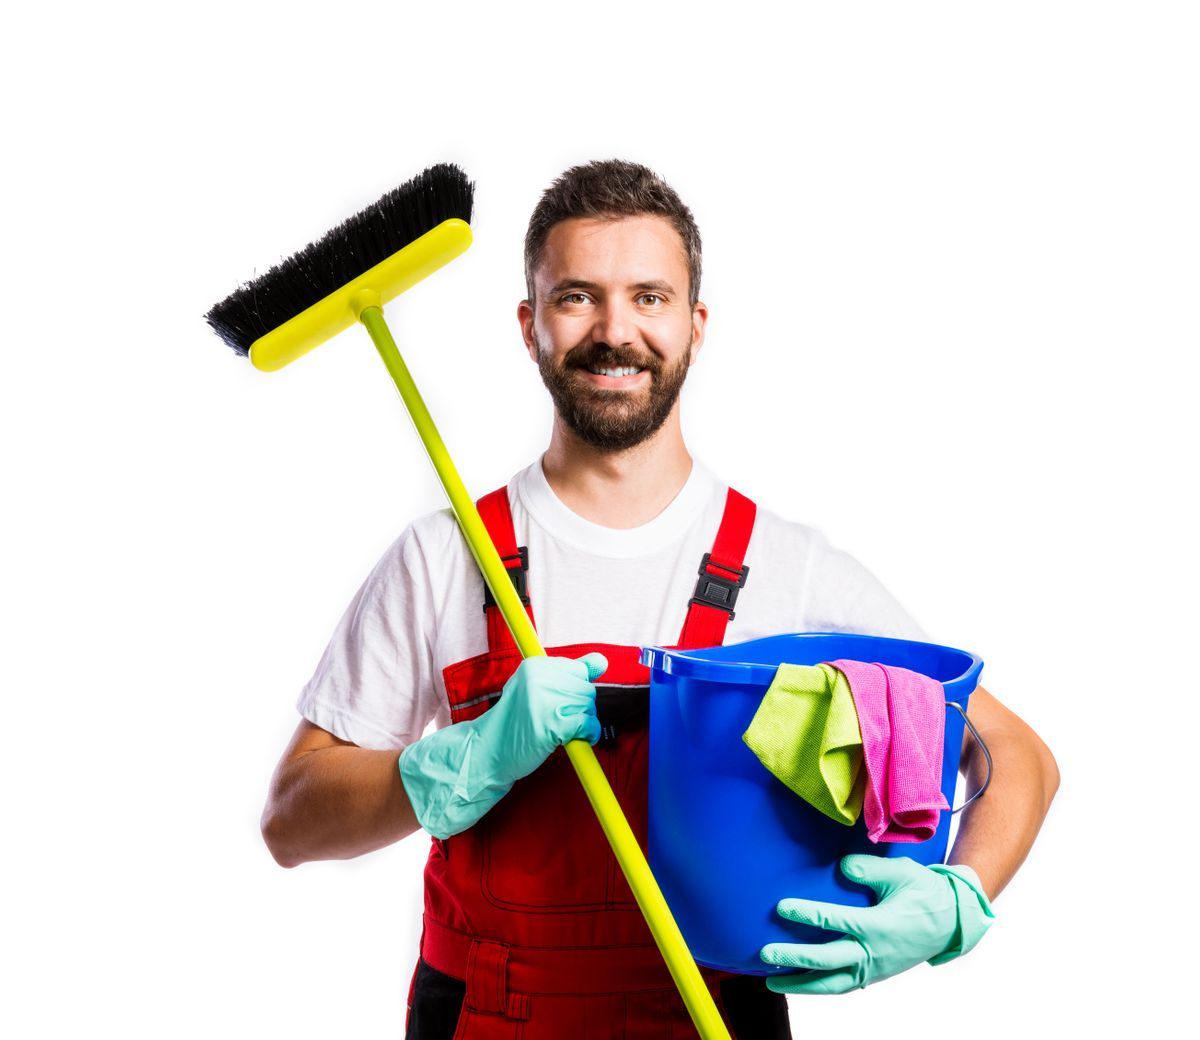 house cleaning service.jpg